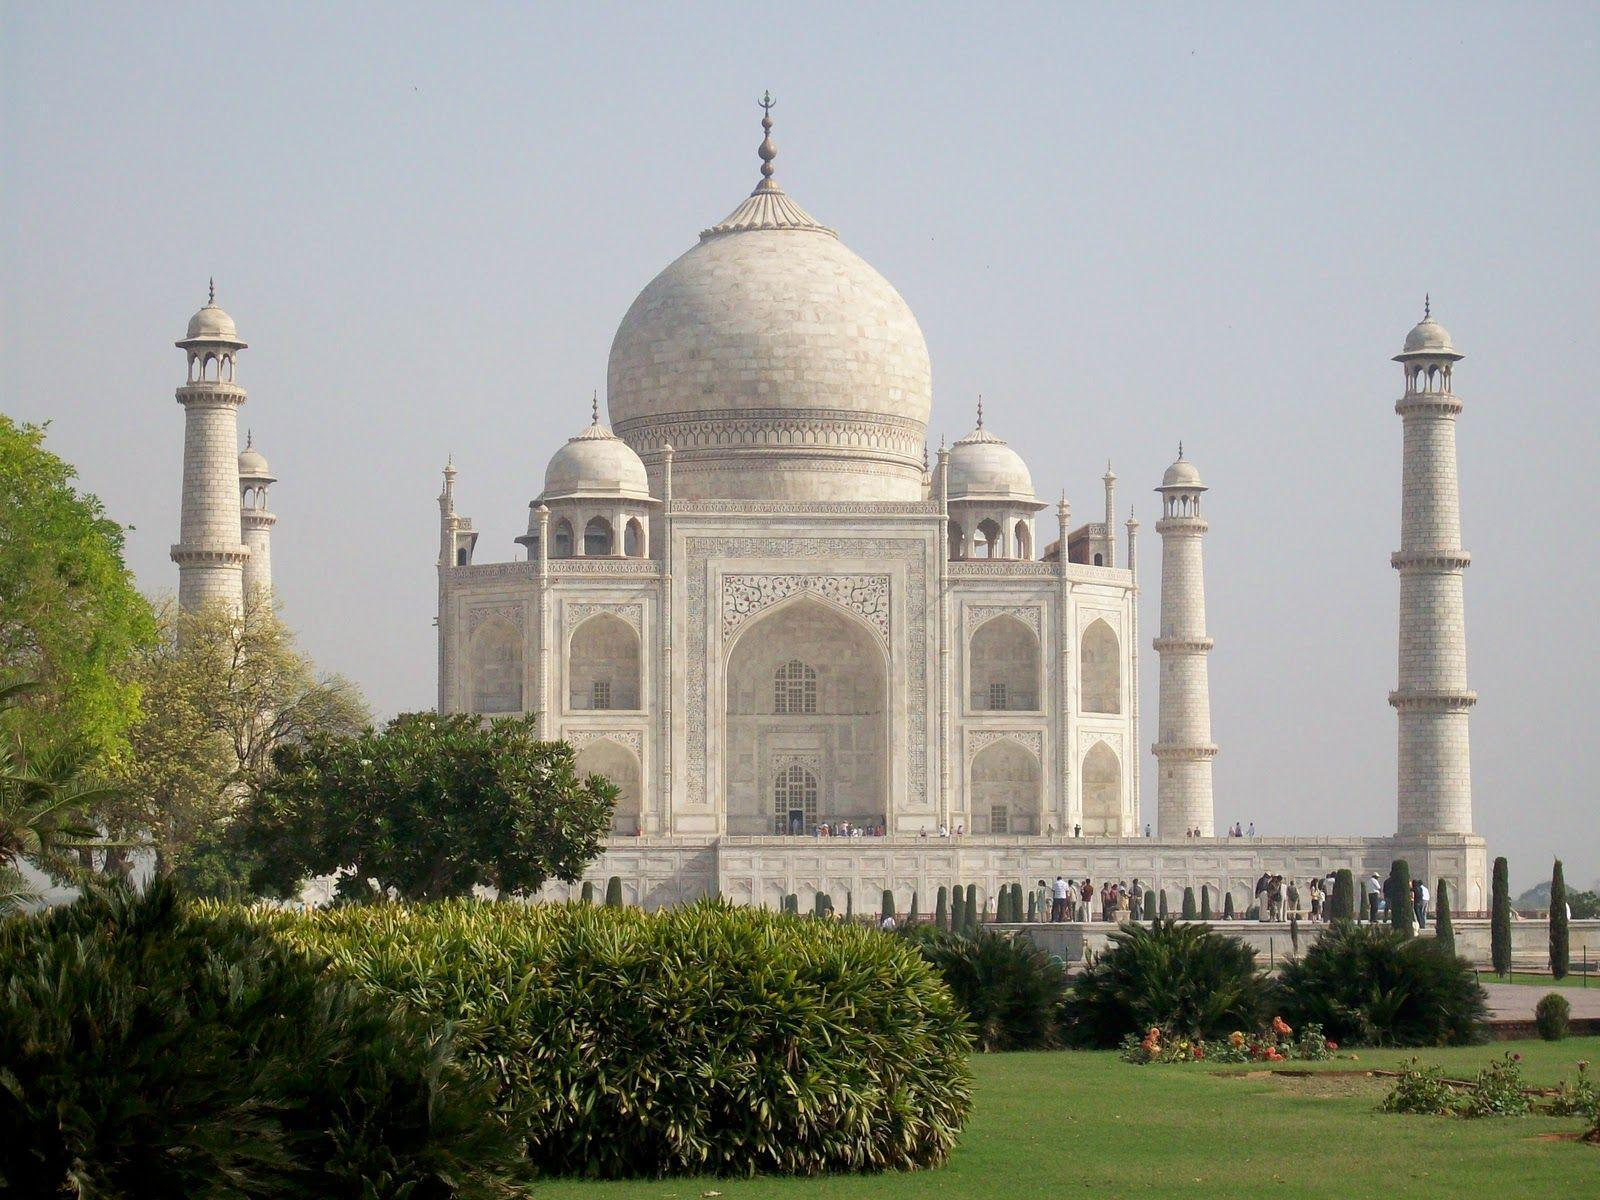 Hd wallpaper taj mahal - Taj Mahal Hd Wallpapers